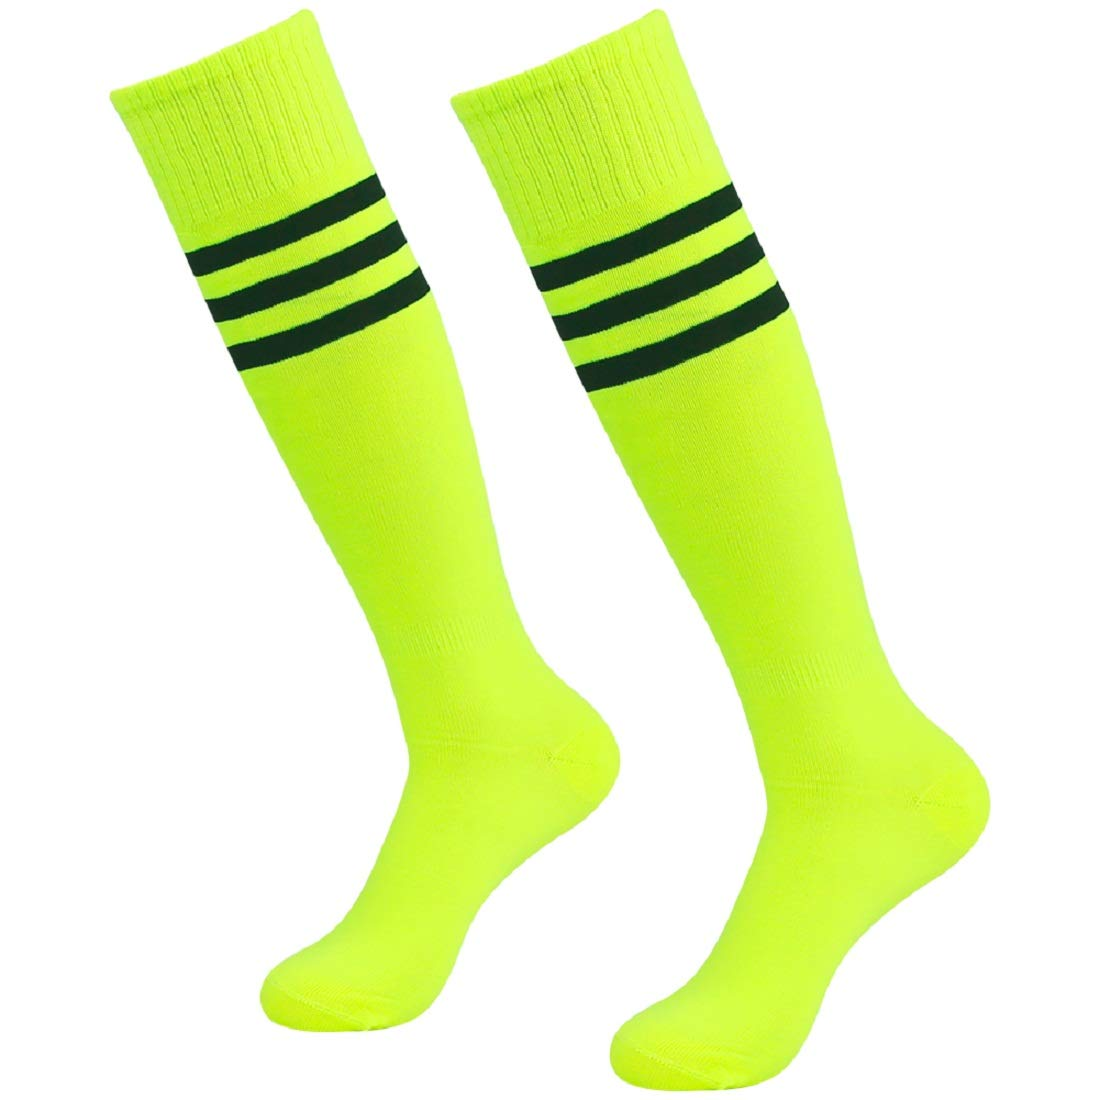 3street Youth Over The Calf Socks, Unisex Summer Breathble Knee-High Triple Striped Sport Tube Soccer Football Team Socks Neo Yellow+Black Stripe 2-Pairs,7-13 by Three street